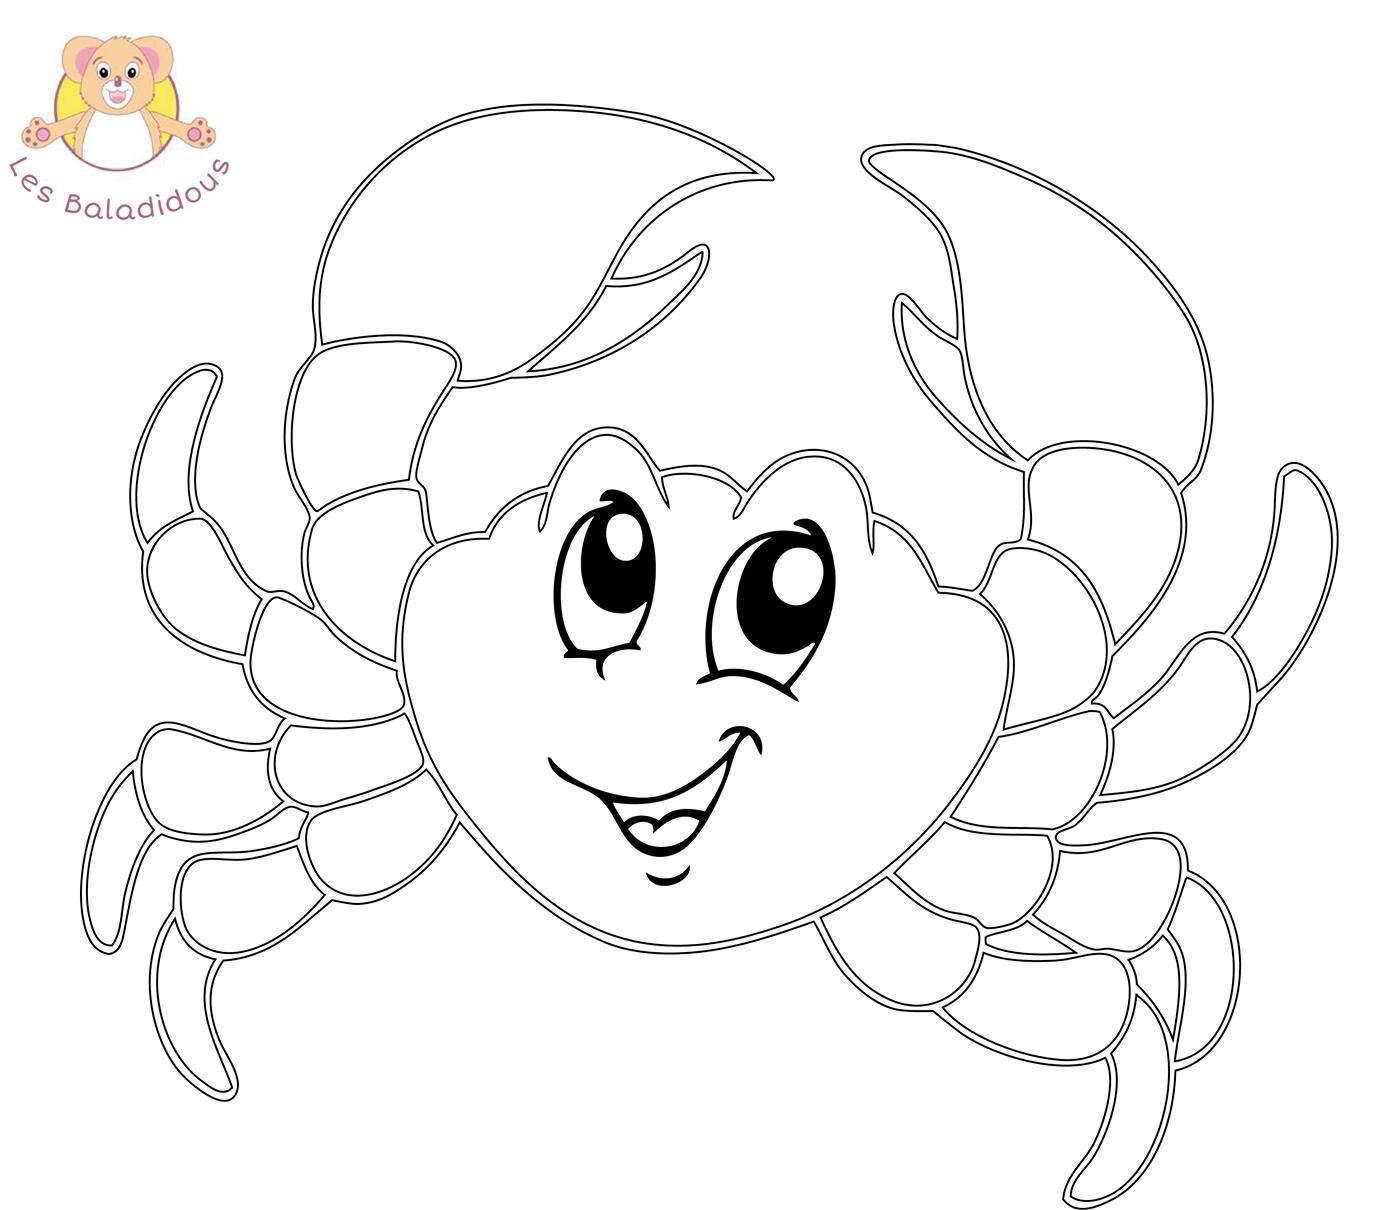 Coloriages mer, plage, animaux marin - Assistante ...